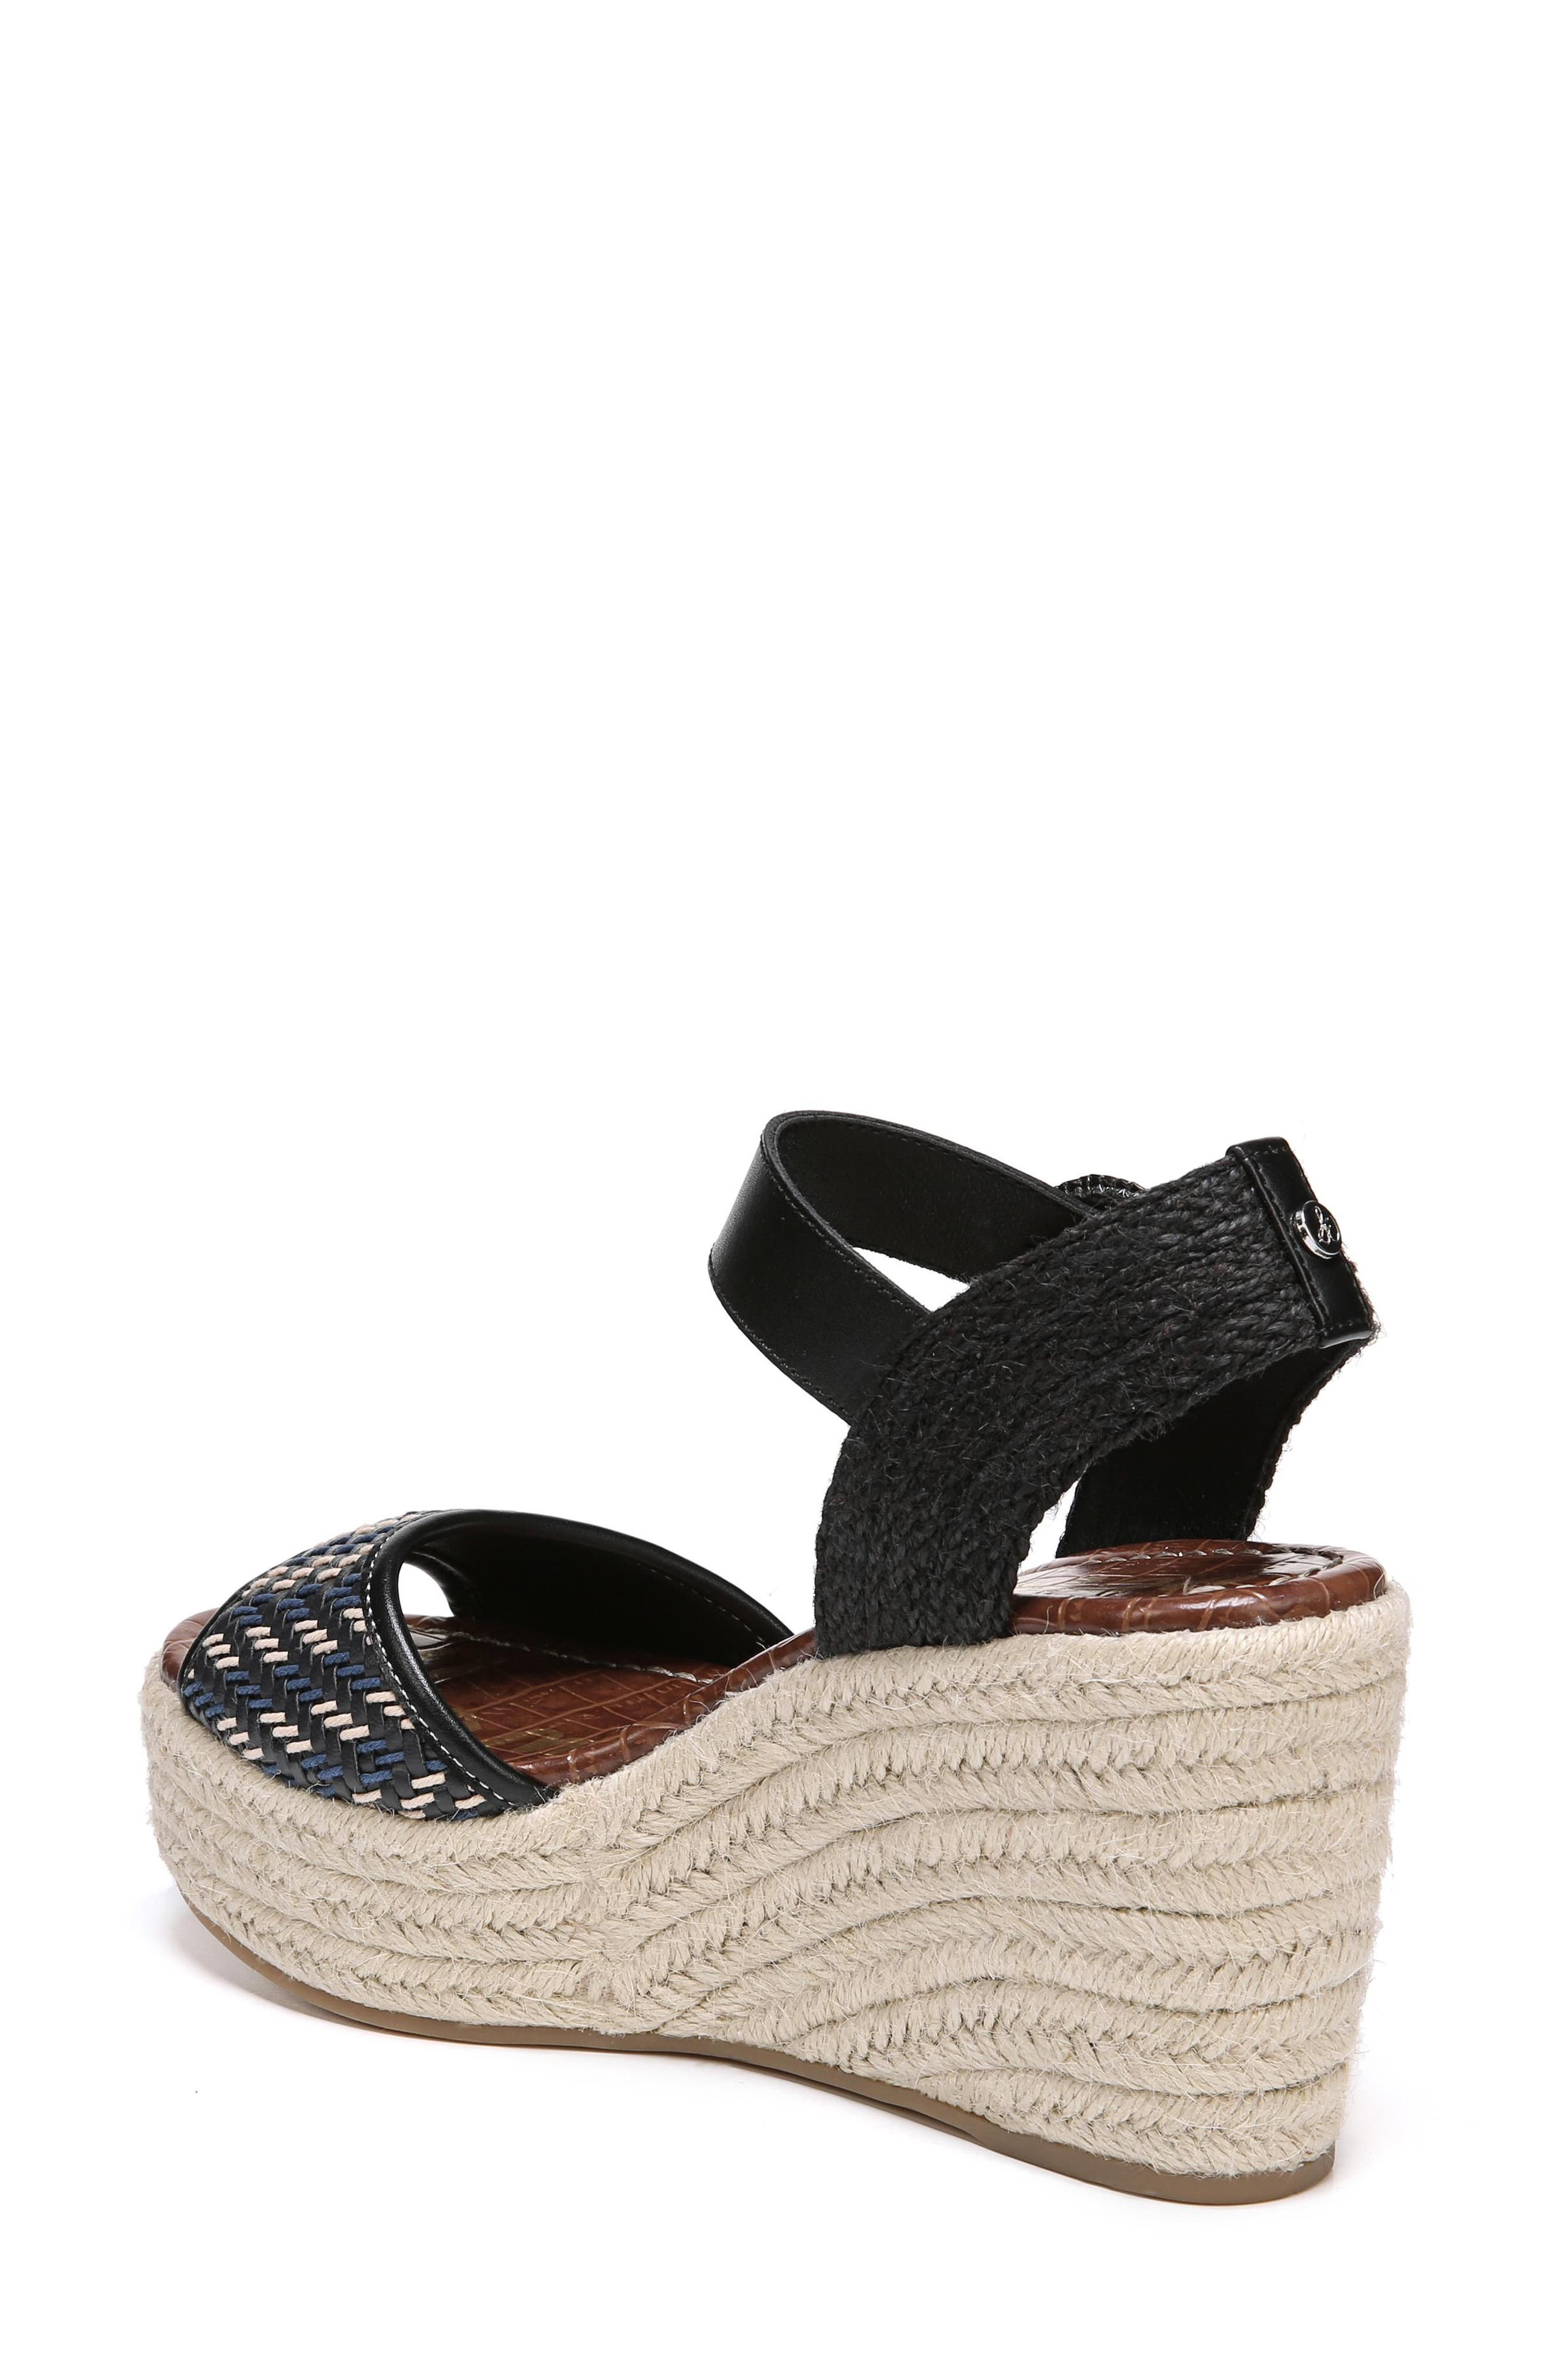 Dimitree Wedge,                             Alternate thumbnail 2, color,                             NAVY/ BLACK